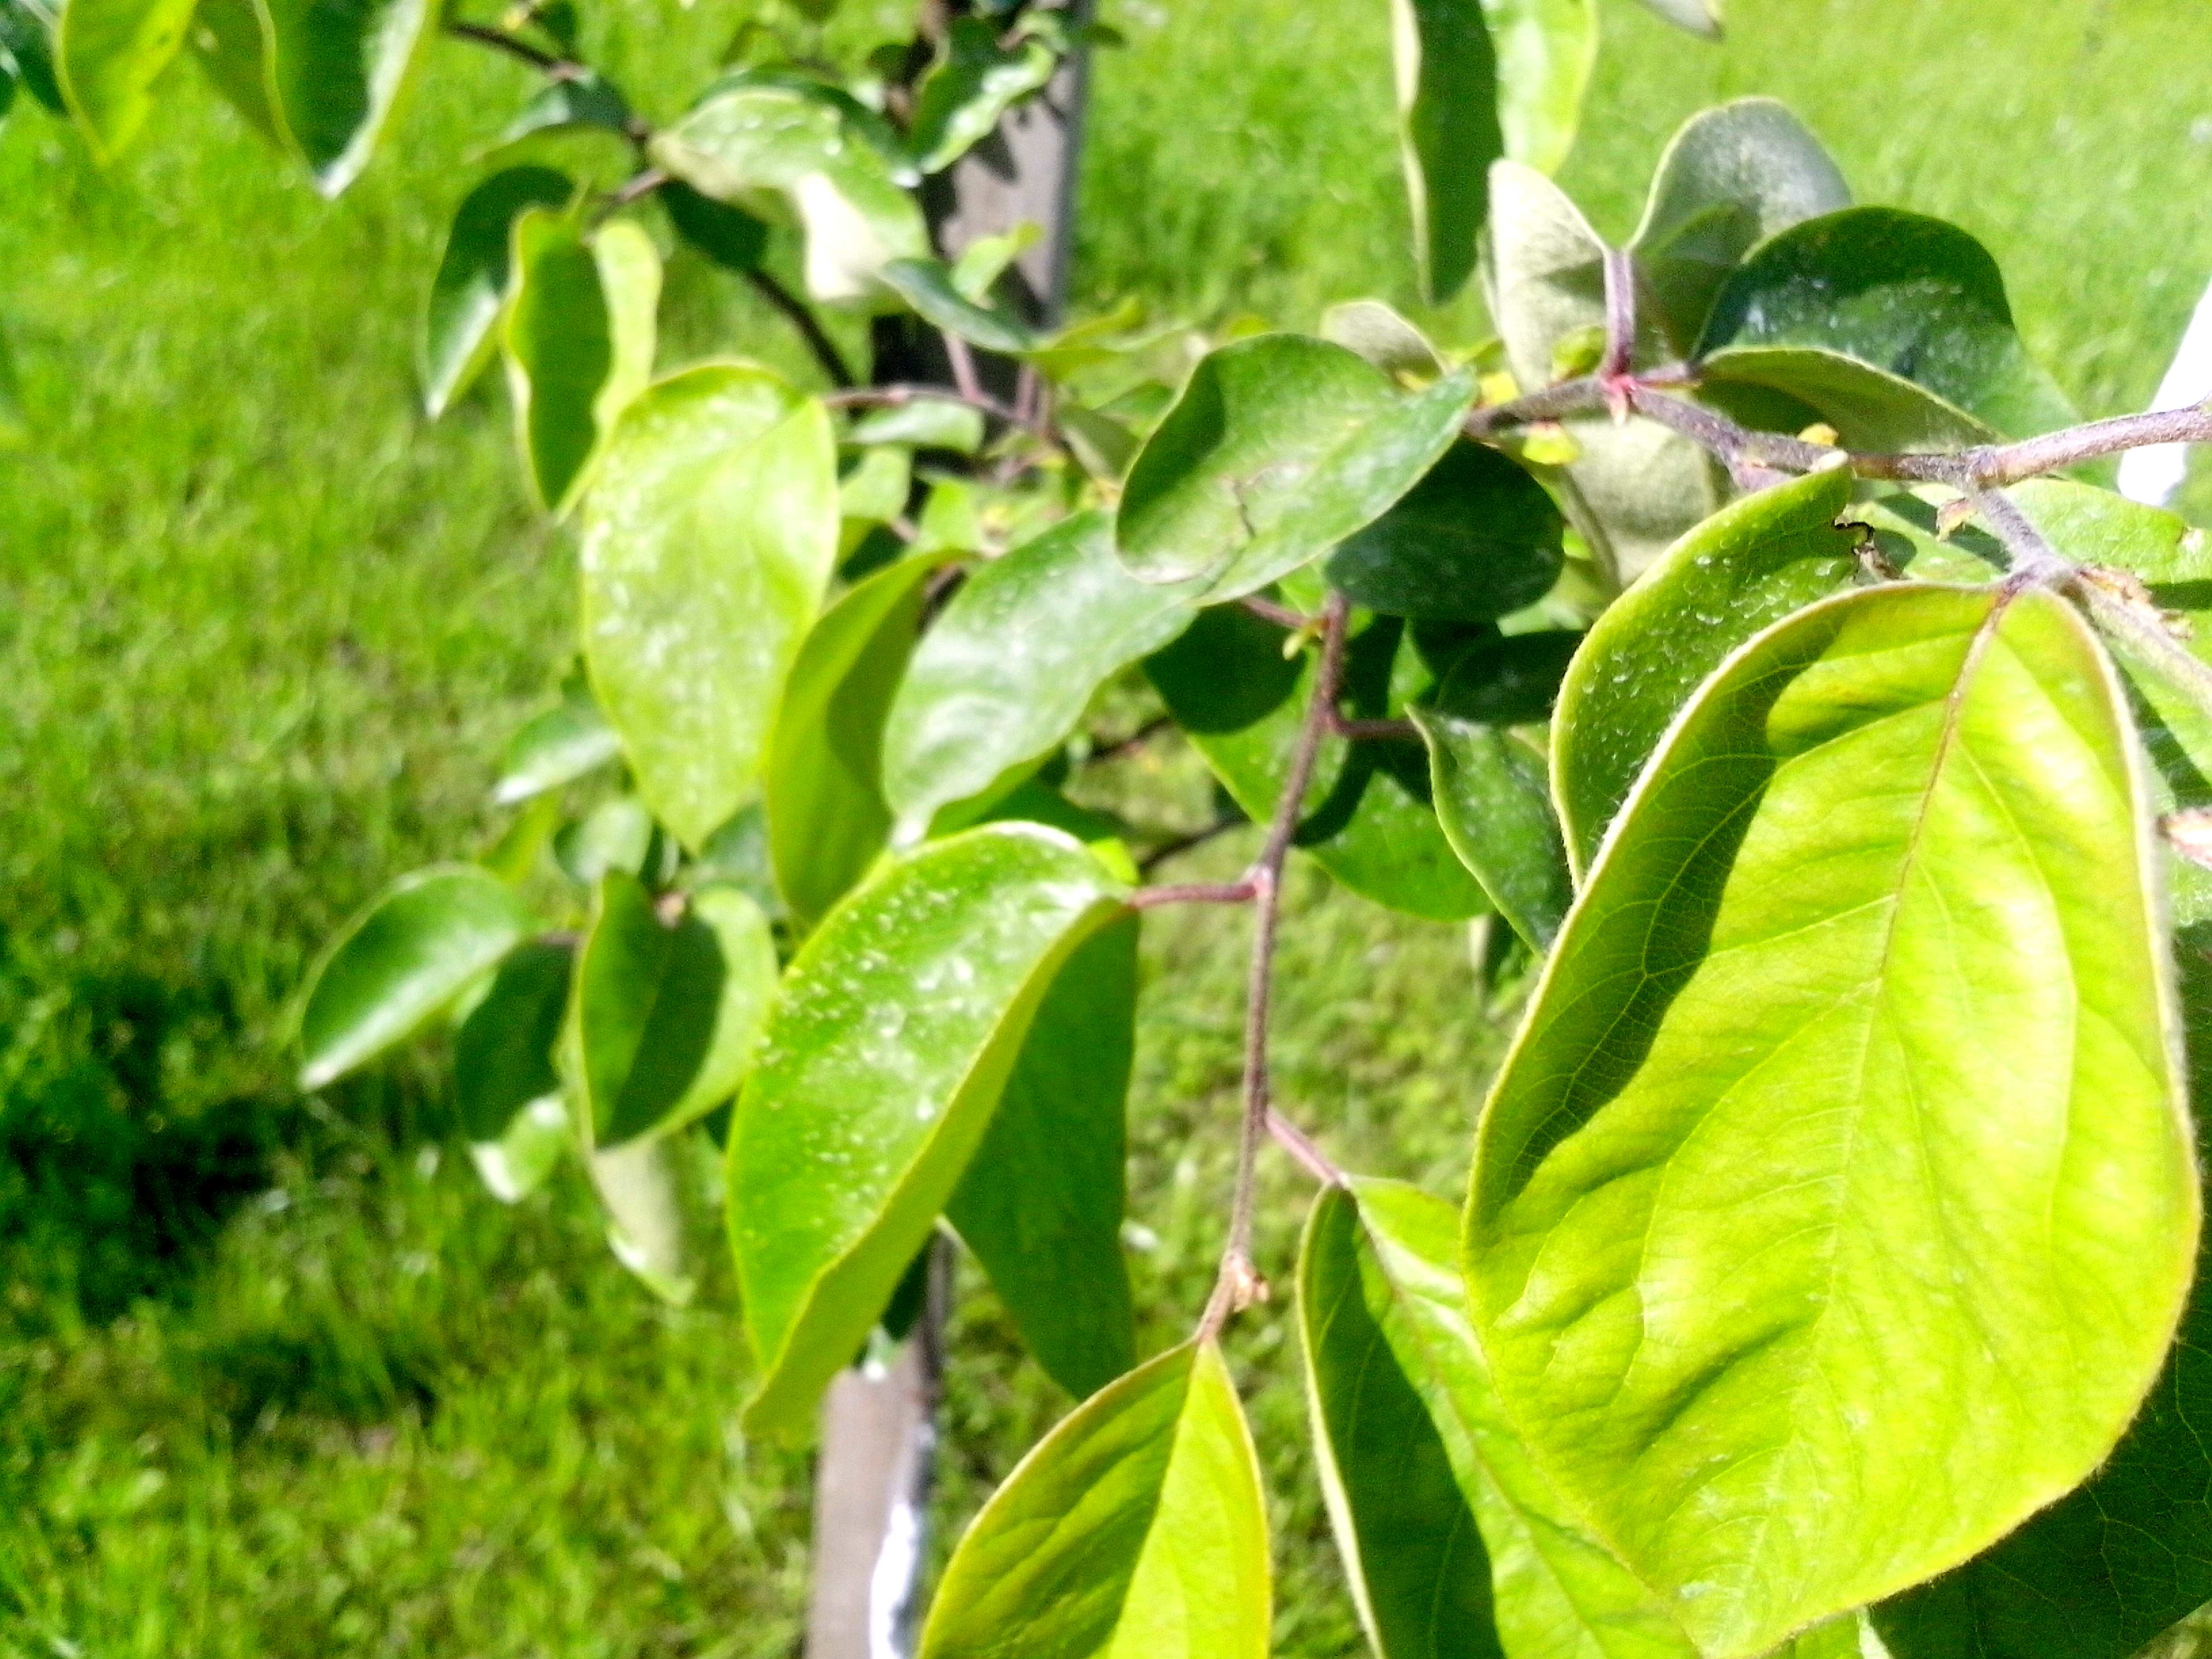 Free photograph; light, green, leaves, quince, fruit